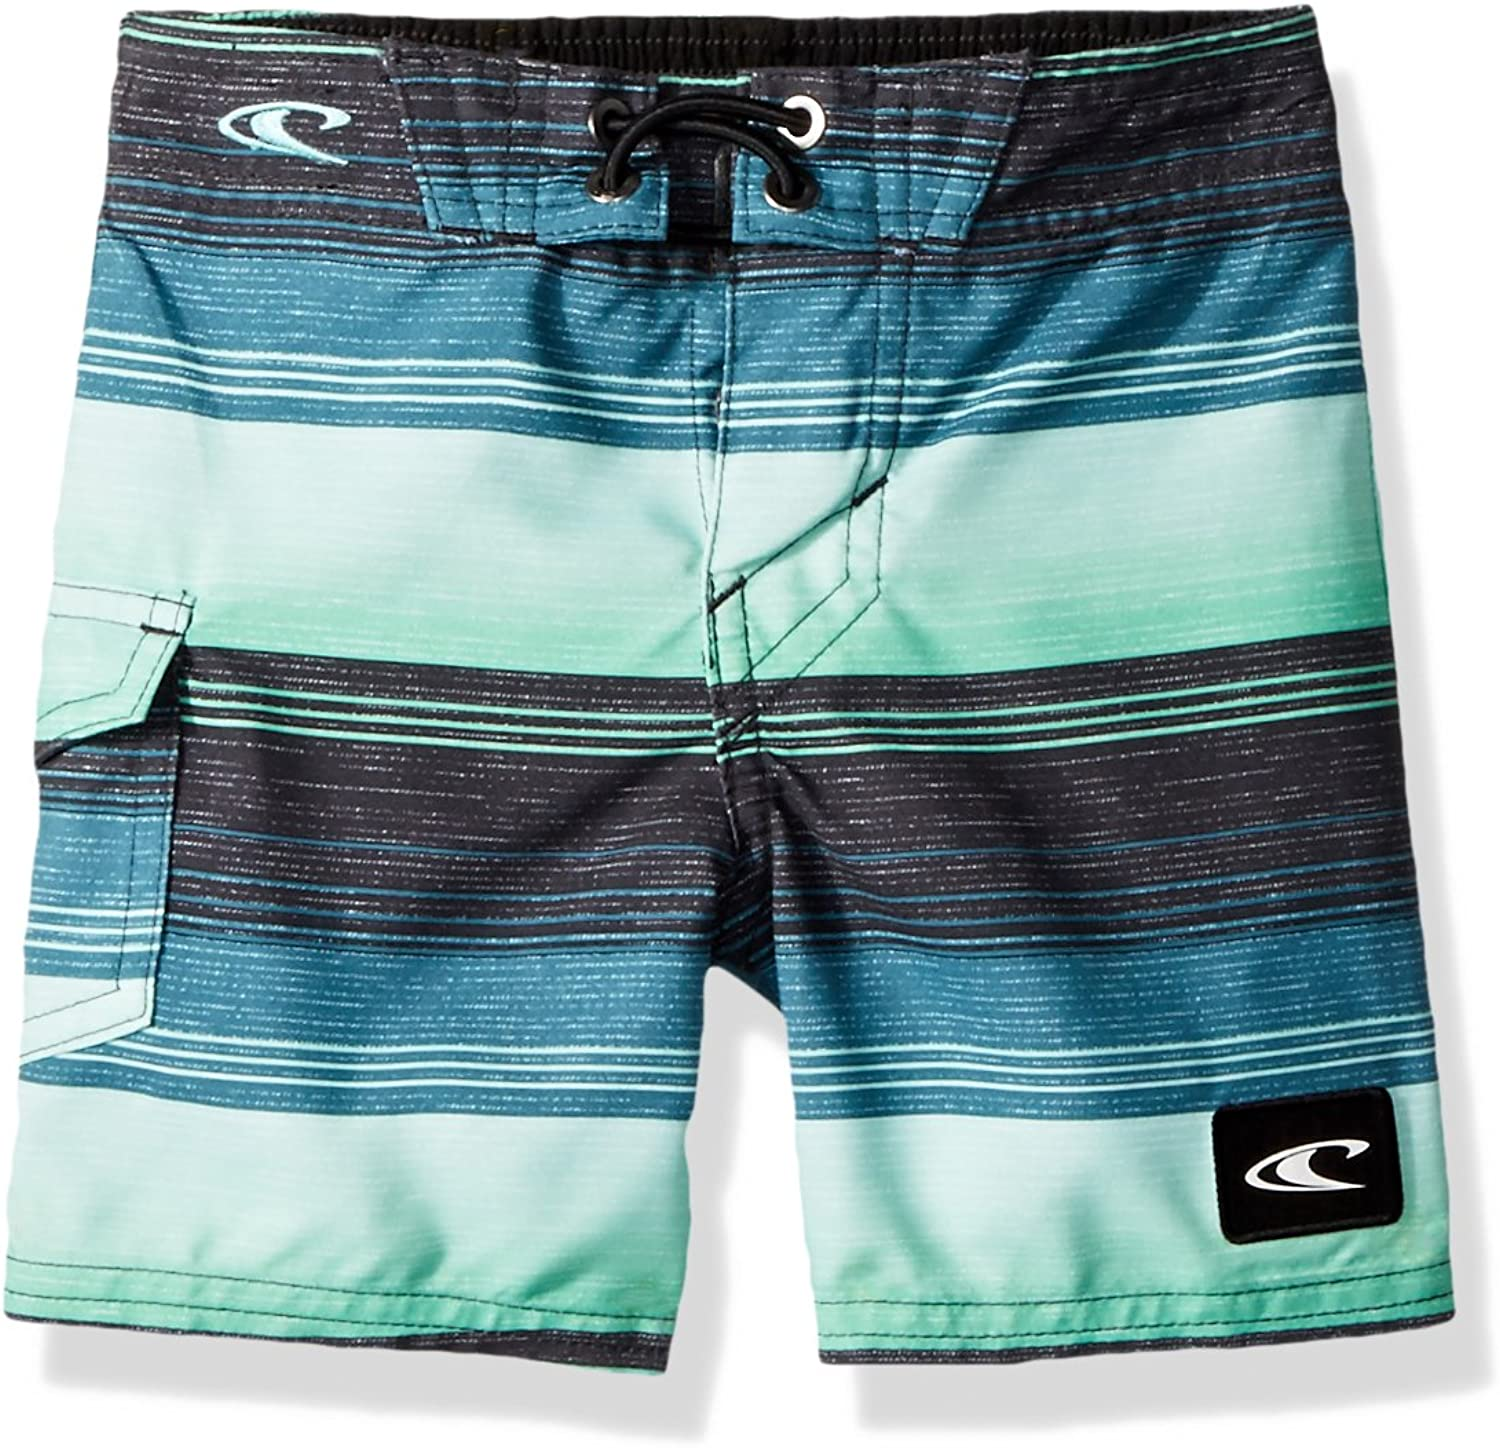 O'Neill Boys' Little Santa Cruz Print Boardshort, Stripe Turquoise, 2T